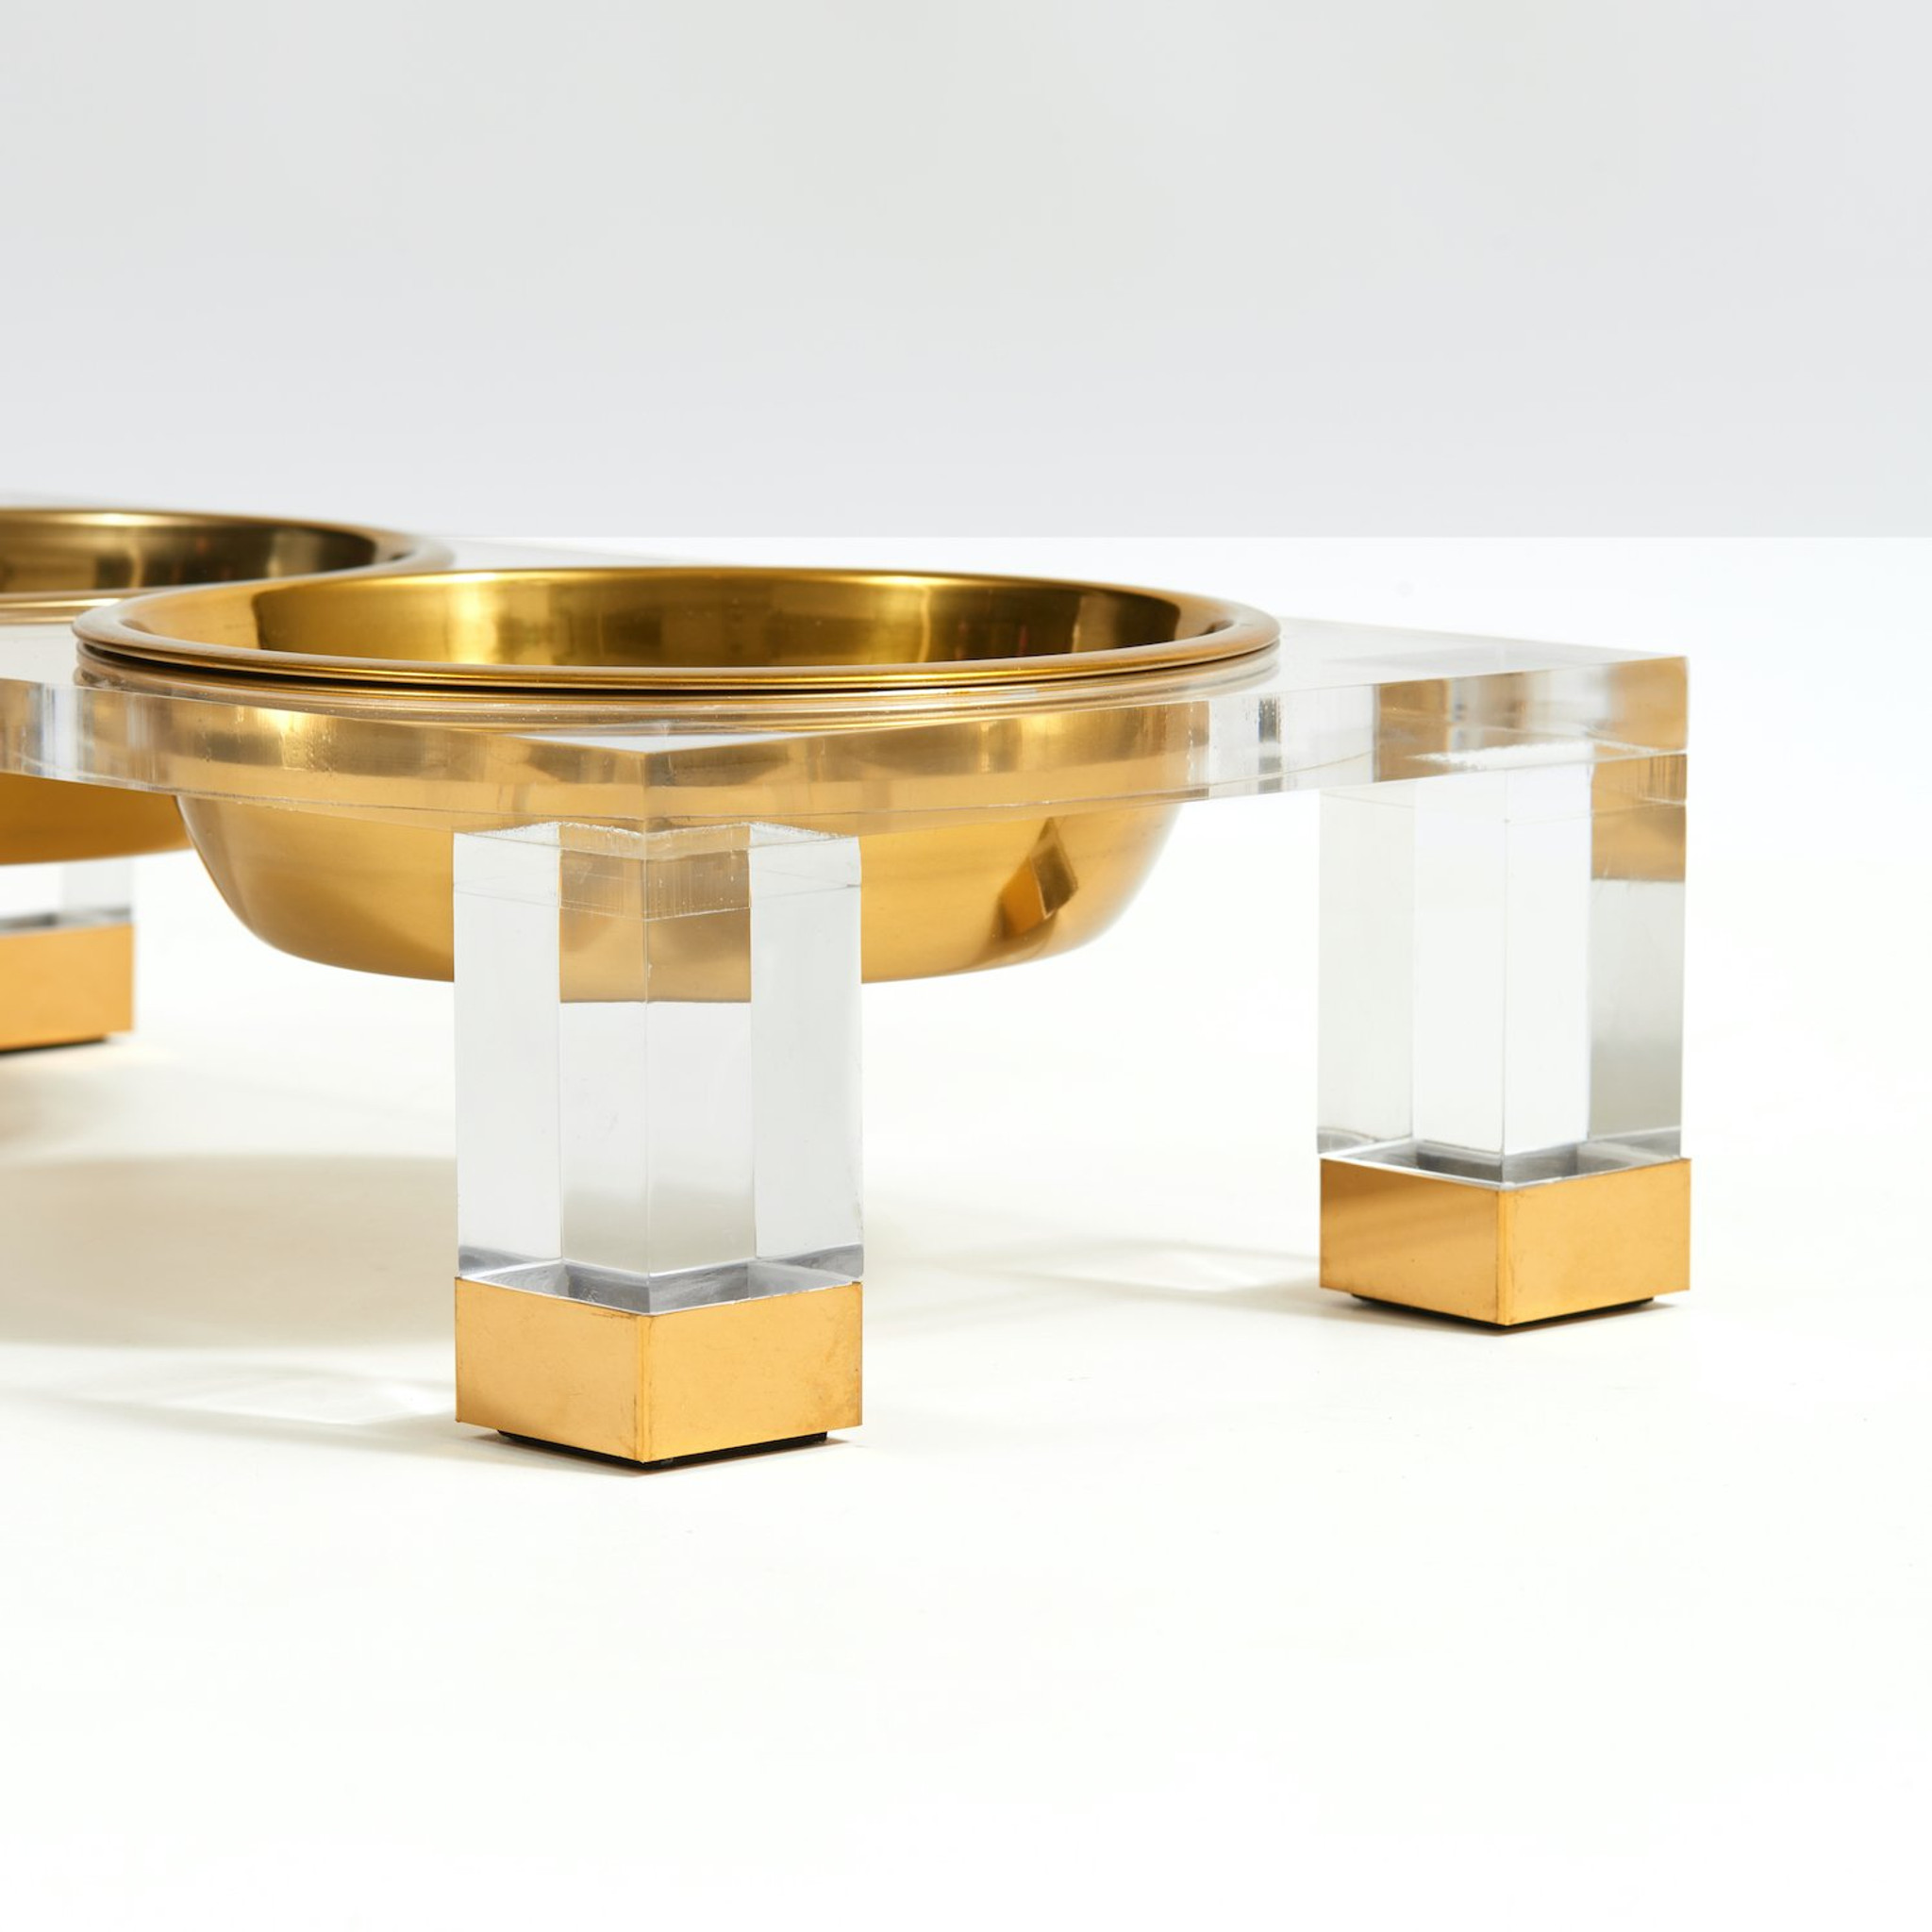 Clear Acrylic Glam Double elevated raised lucite modern gold silver Feeder Hiddin